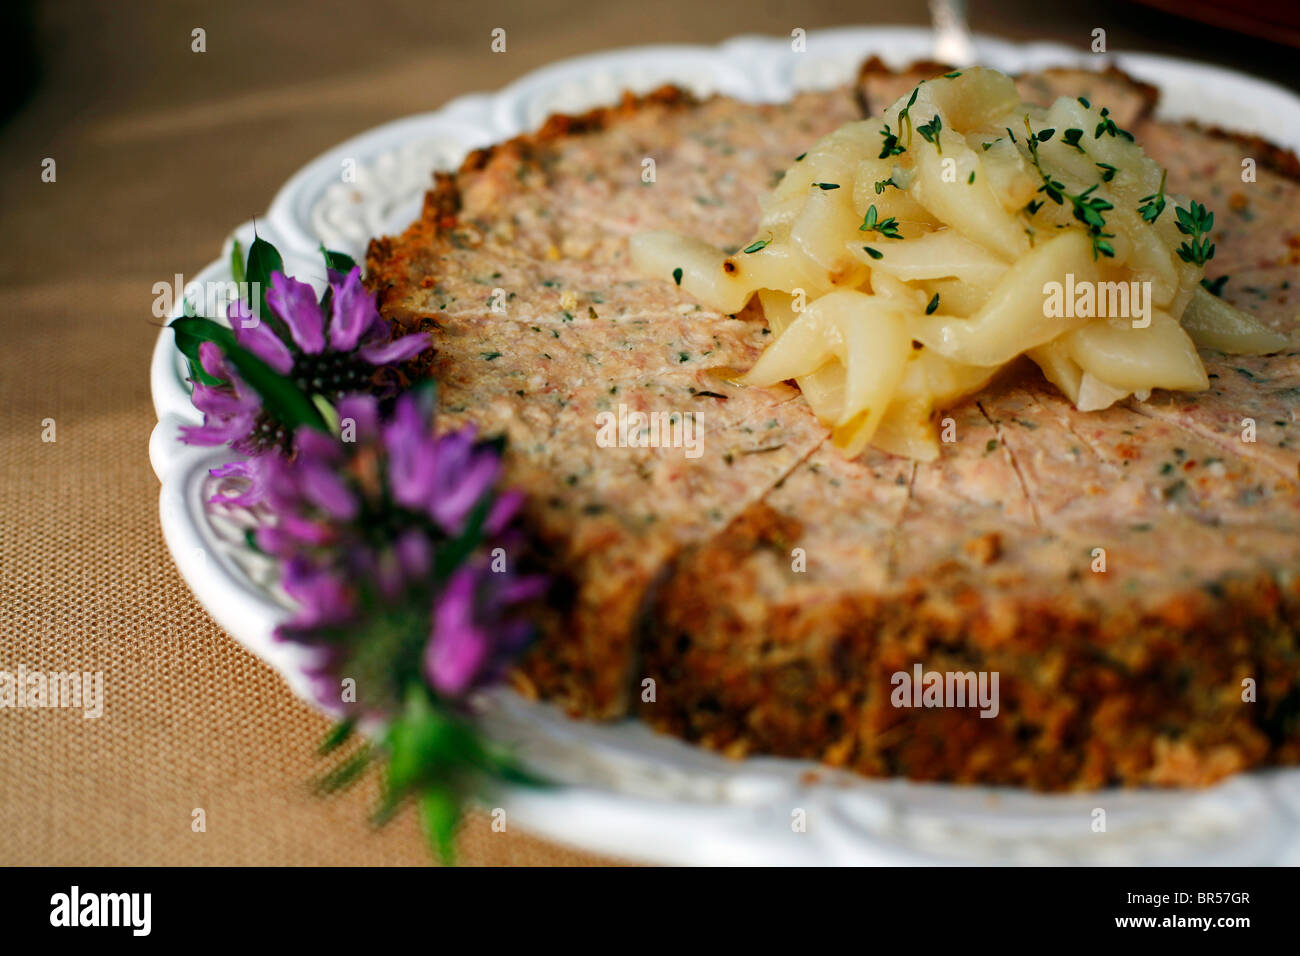 Rabbit pie with poached pears appetizer. - Stock Image